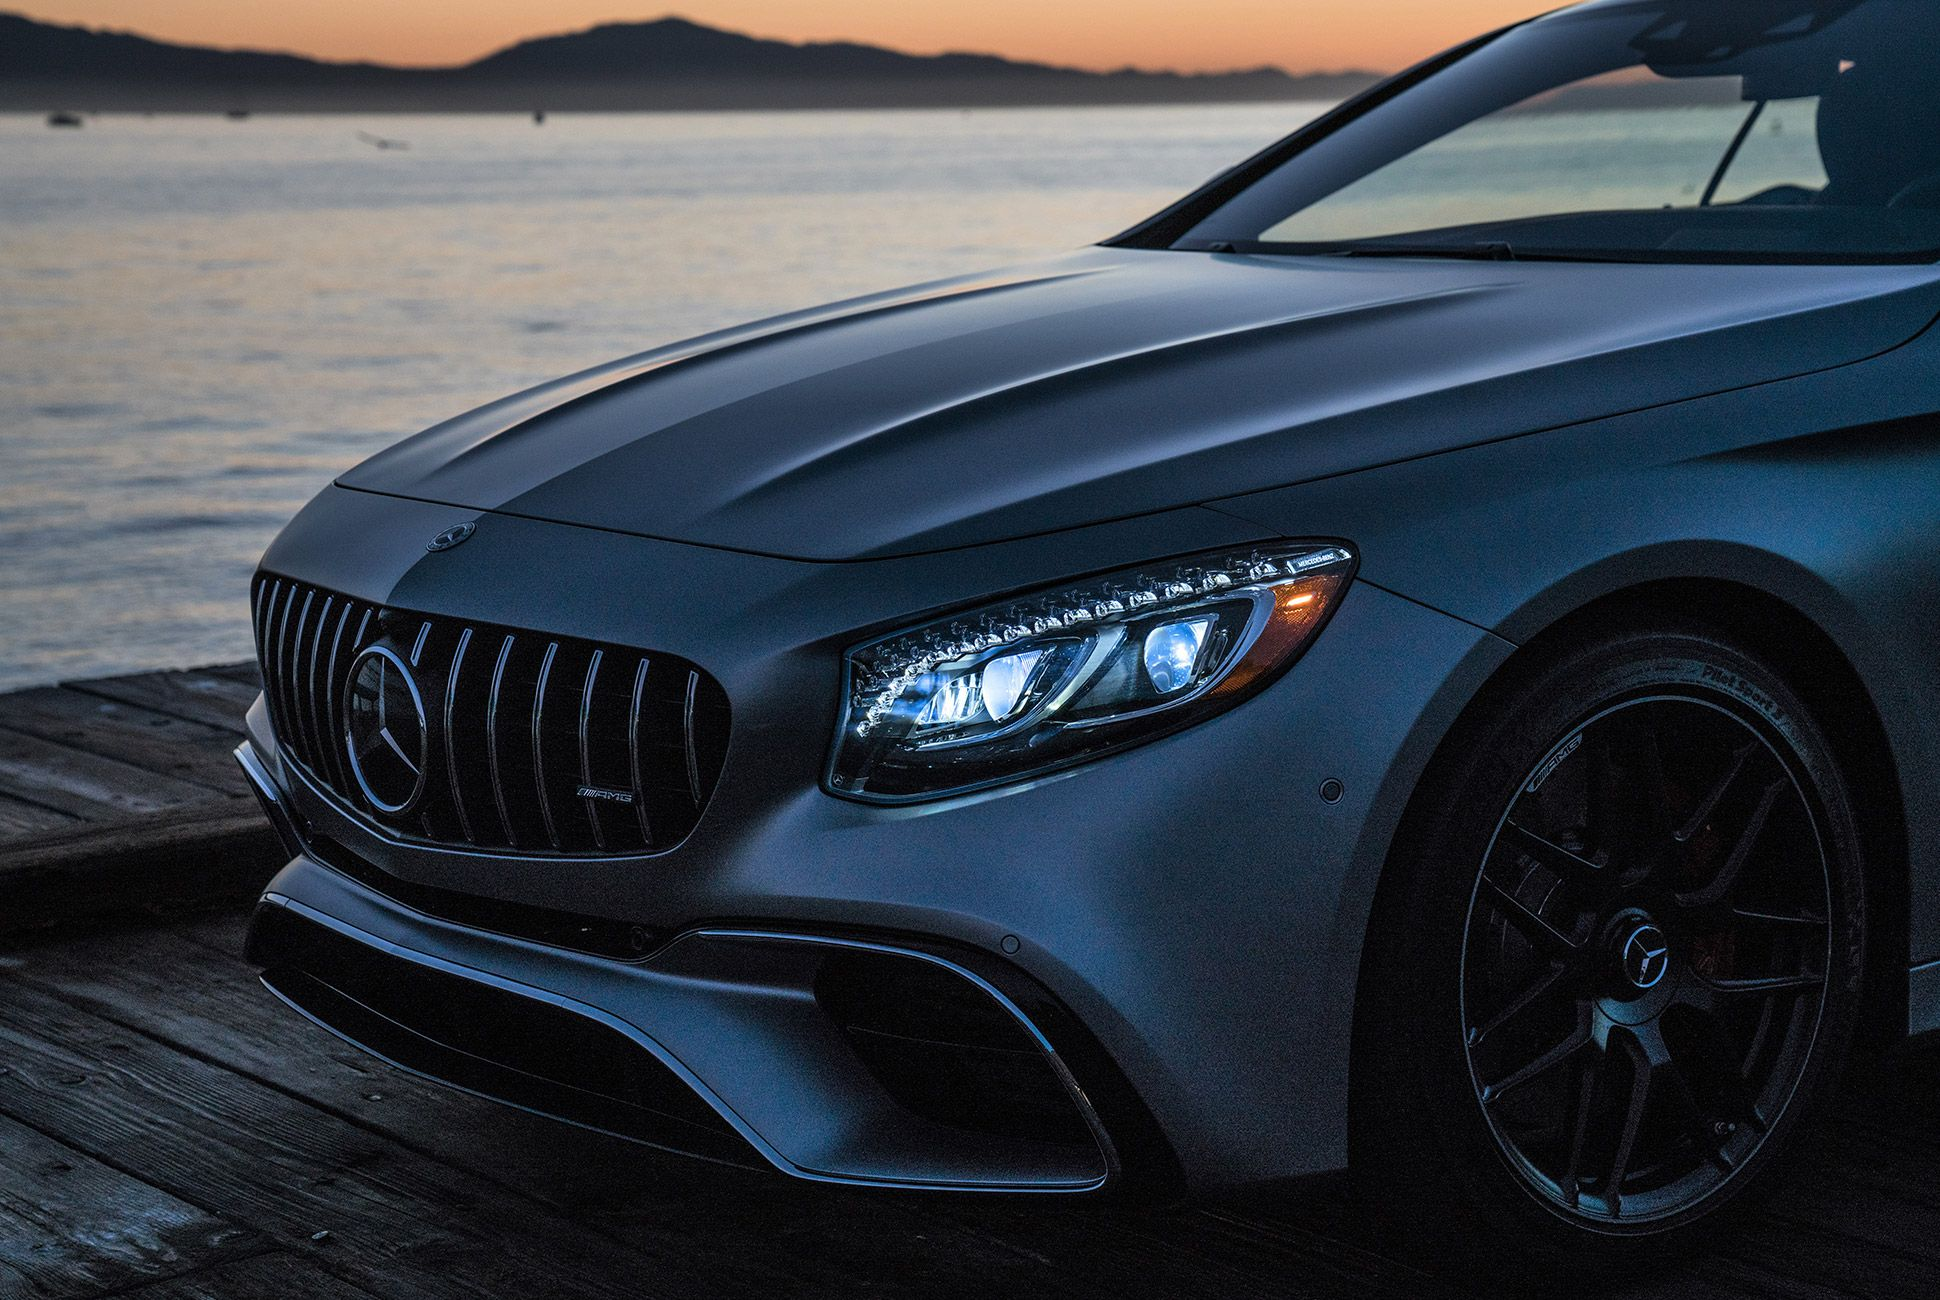 Mercedes-Benz-S63-AMG-Coupe-Review-gear-patrol-3